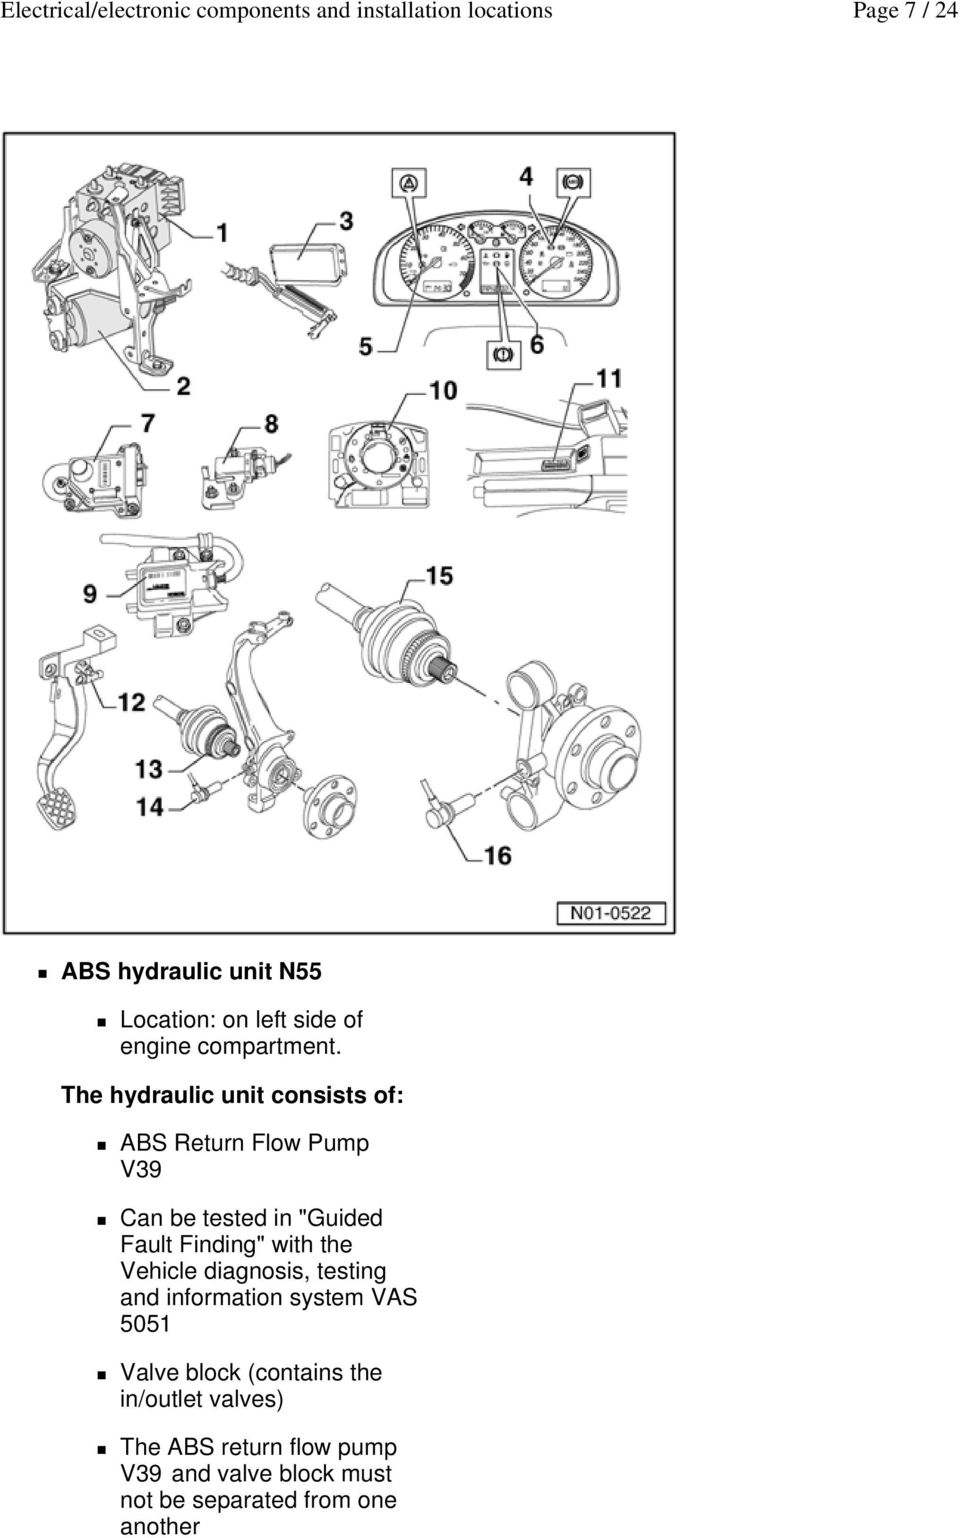 1993 Vw Passat Abs Control And Hydraulic Unit Car Wiring Diagram